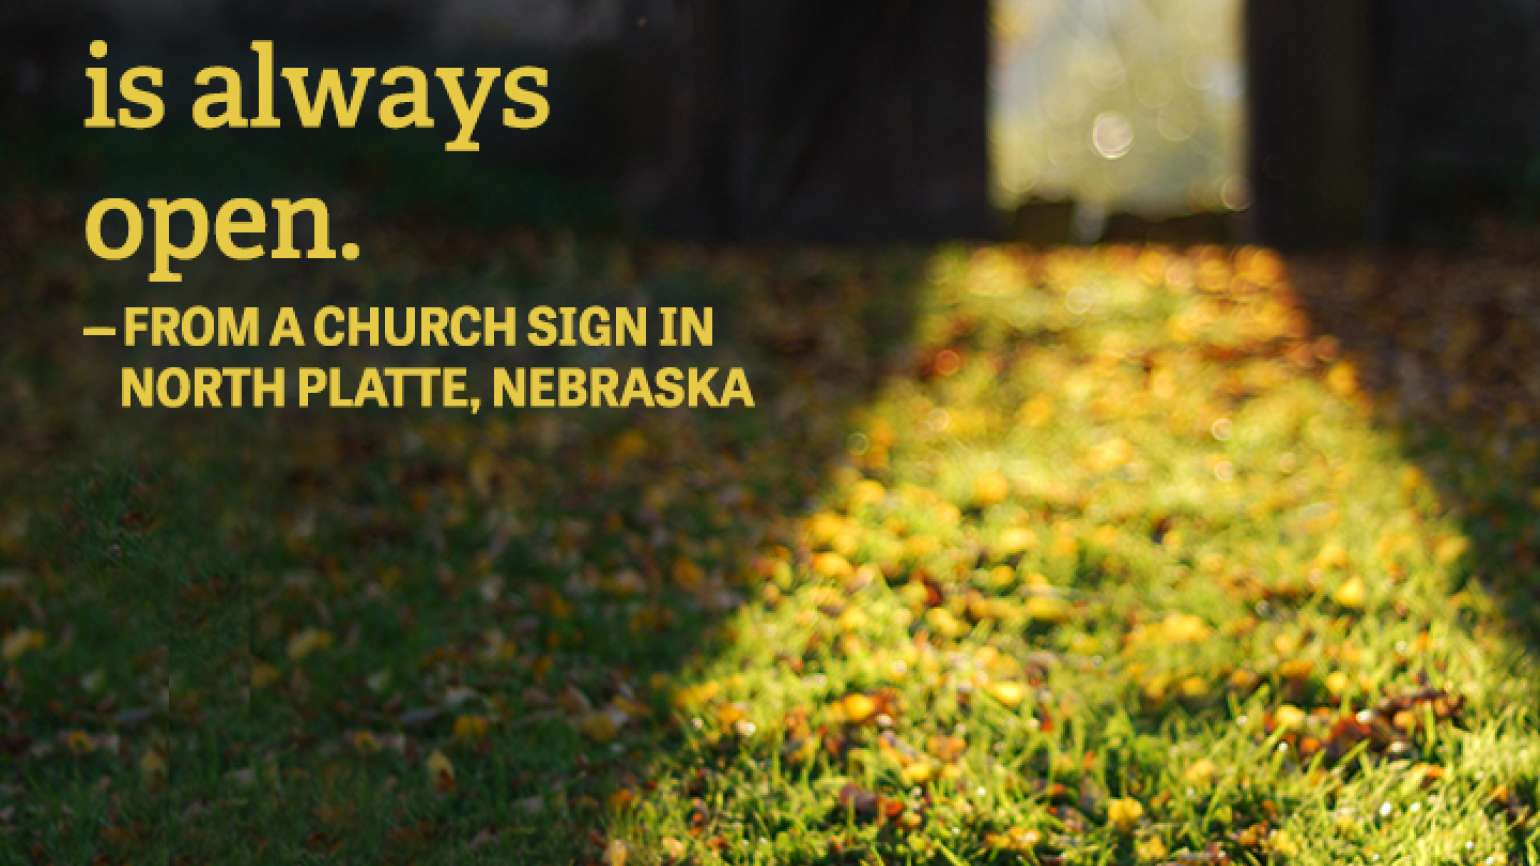 Happiness Quote on Church Sign in North Platte, Nebraska